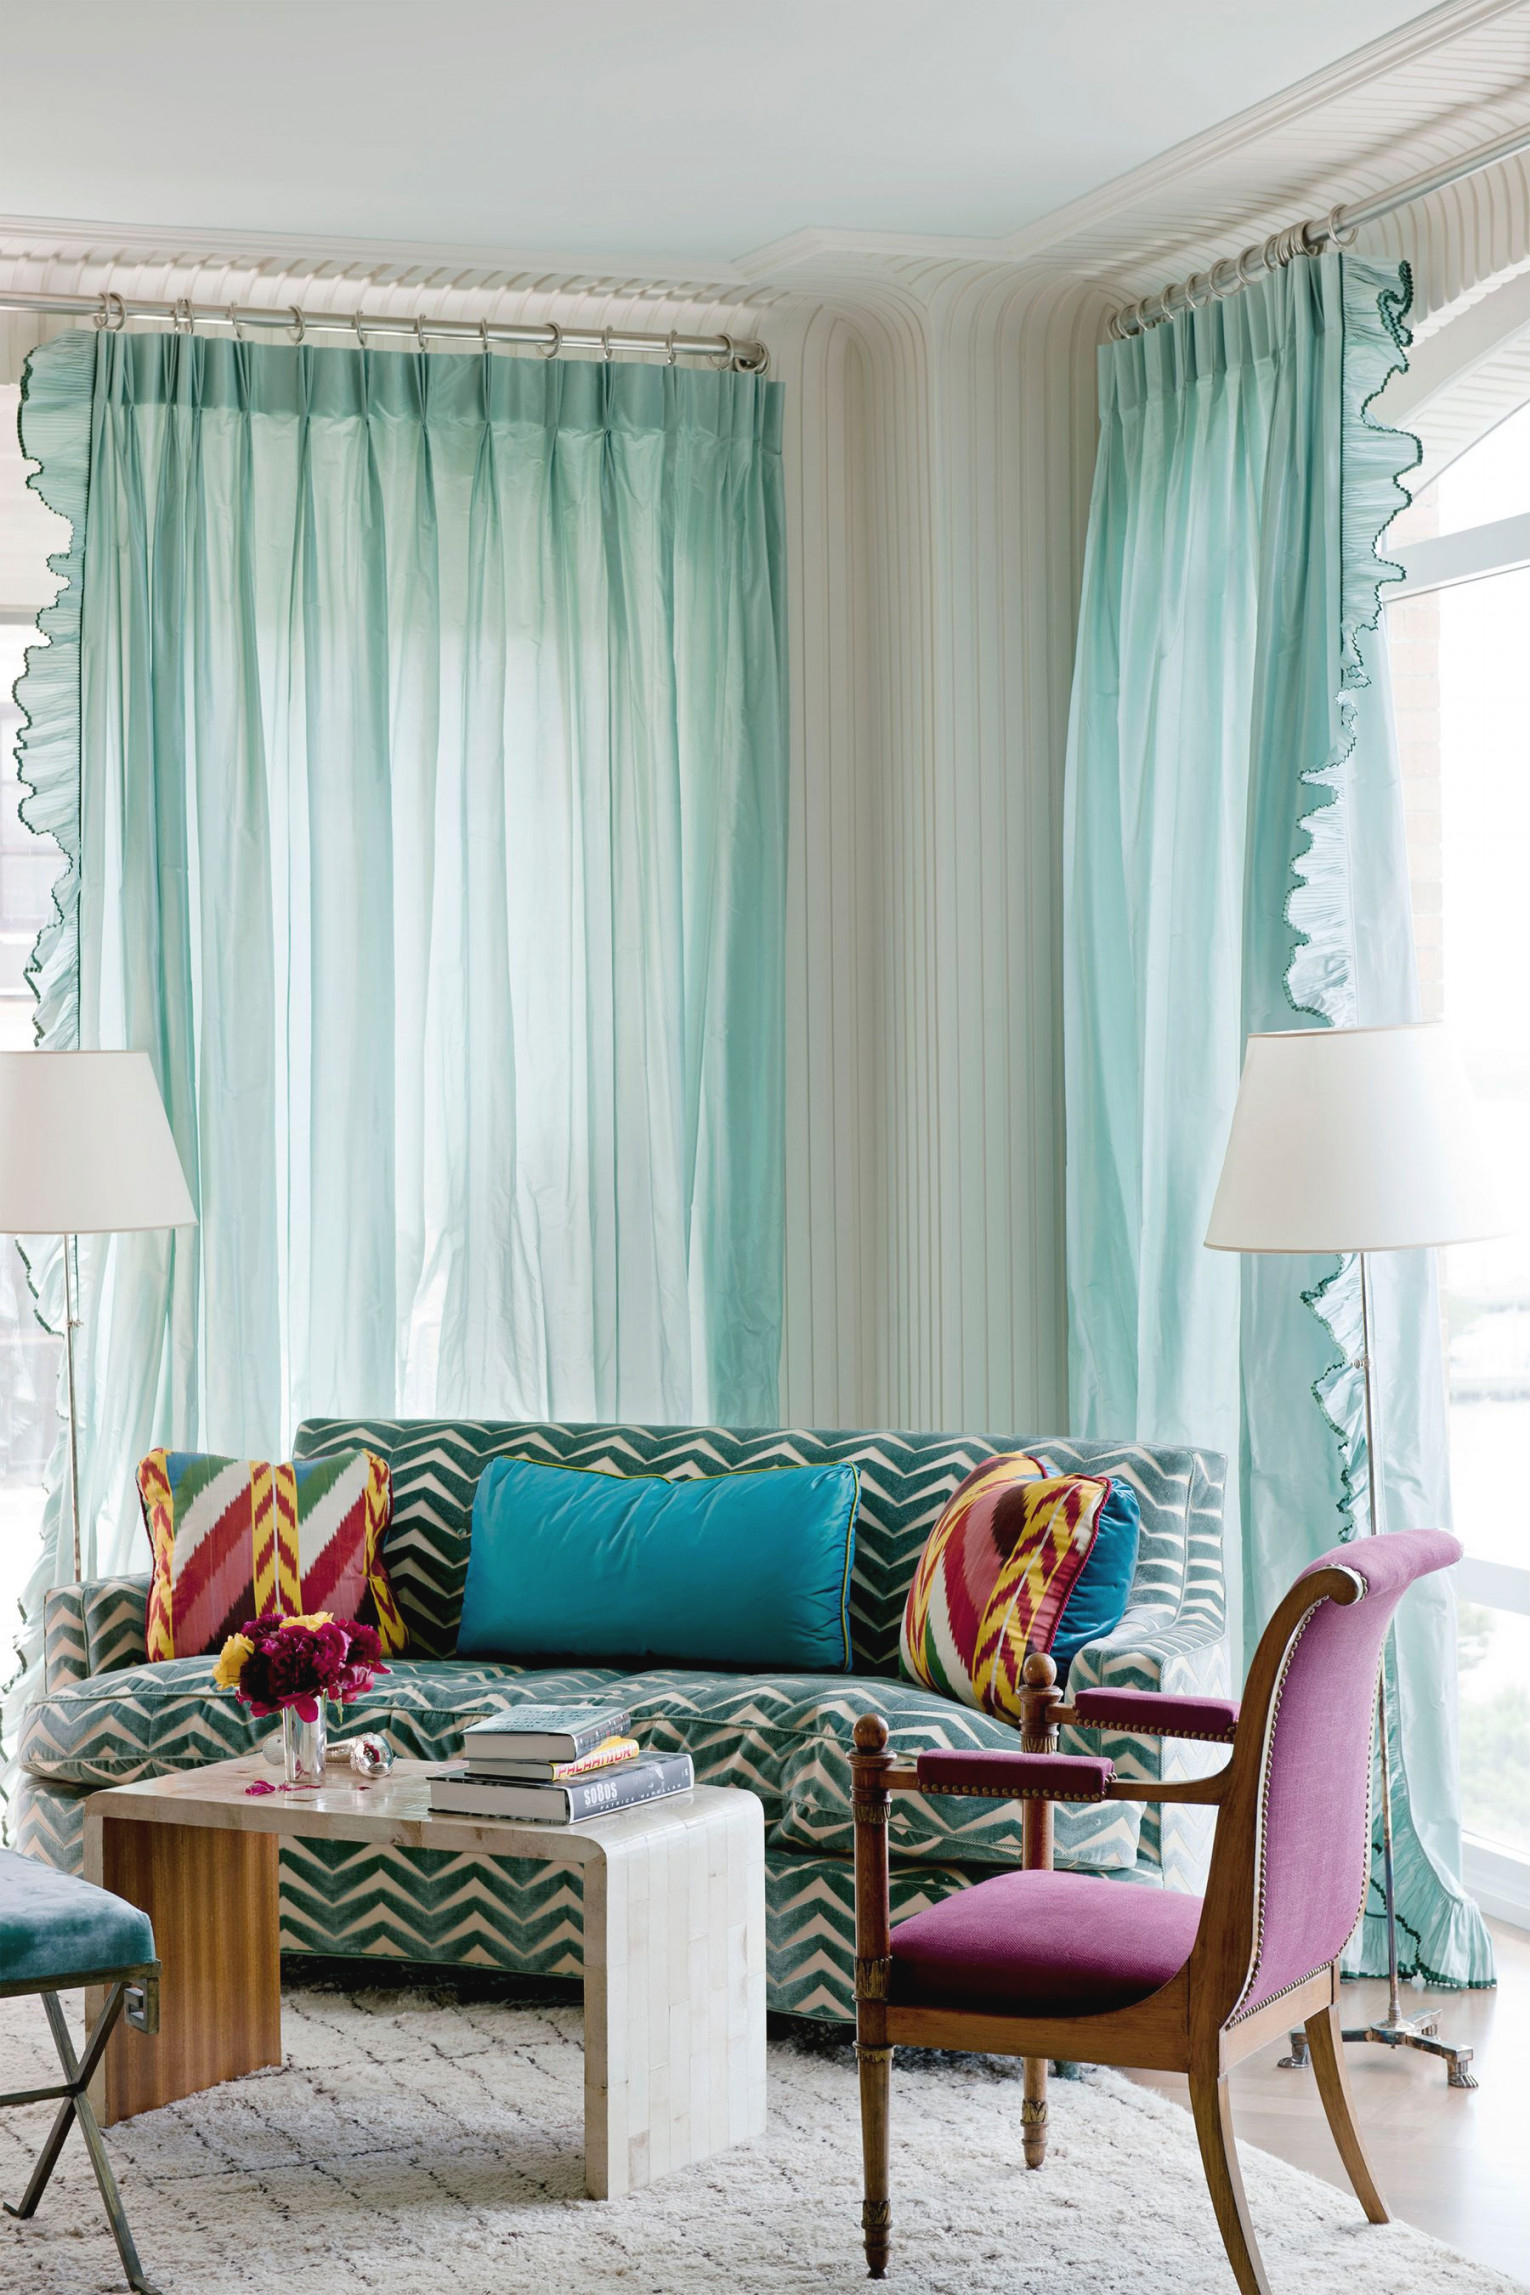 43 Best Window Treatment Ideas - Window Coverings, Curtains intended for Living Room Curtains And Drapes